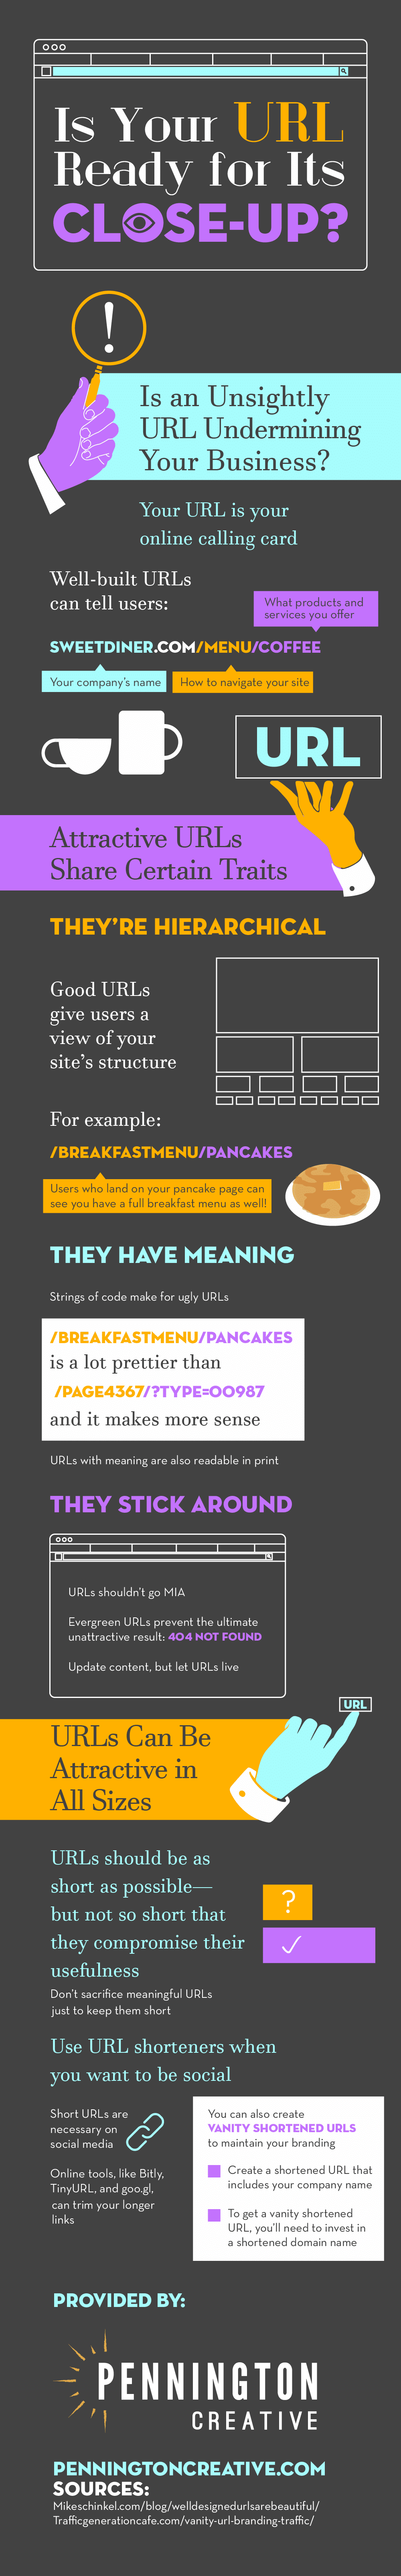 Infographic about creating effective URLs.